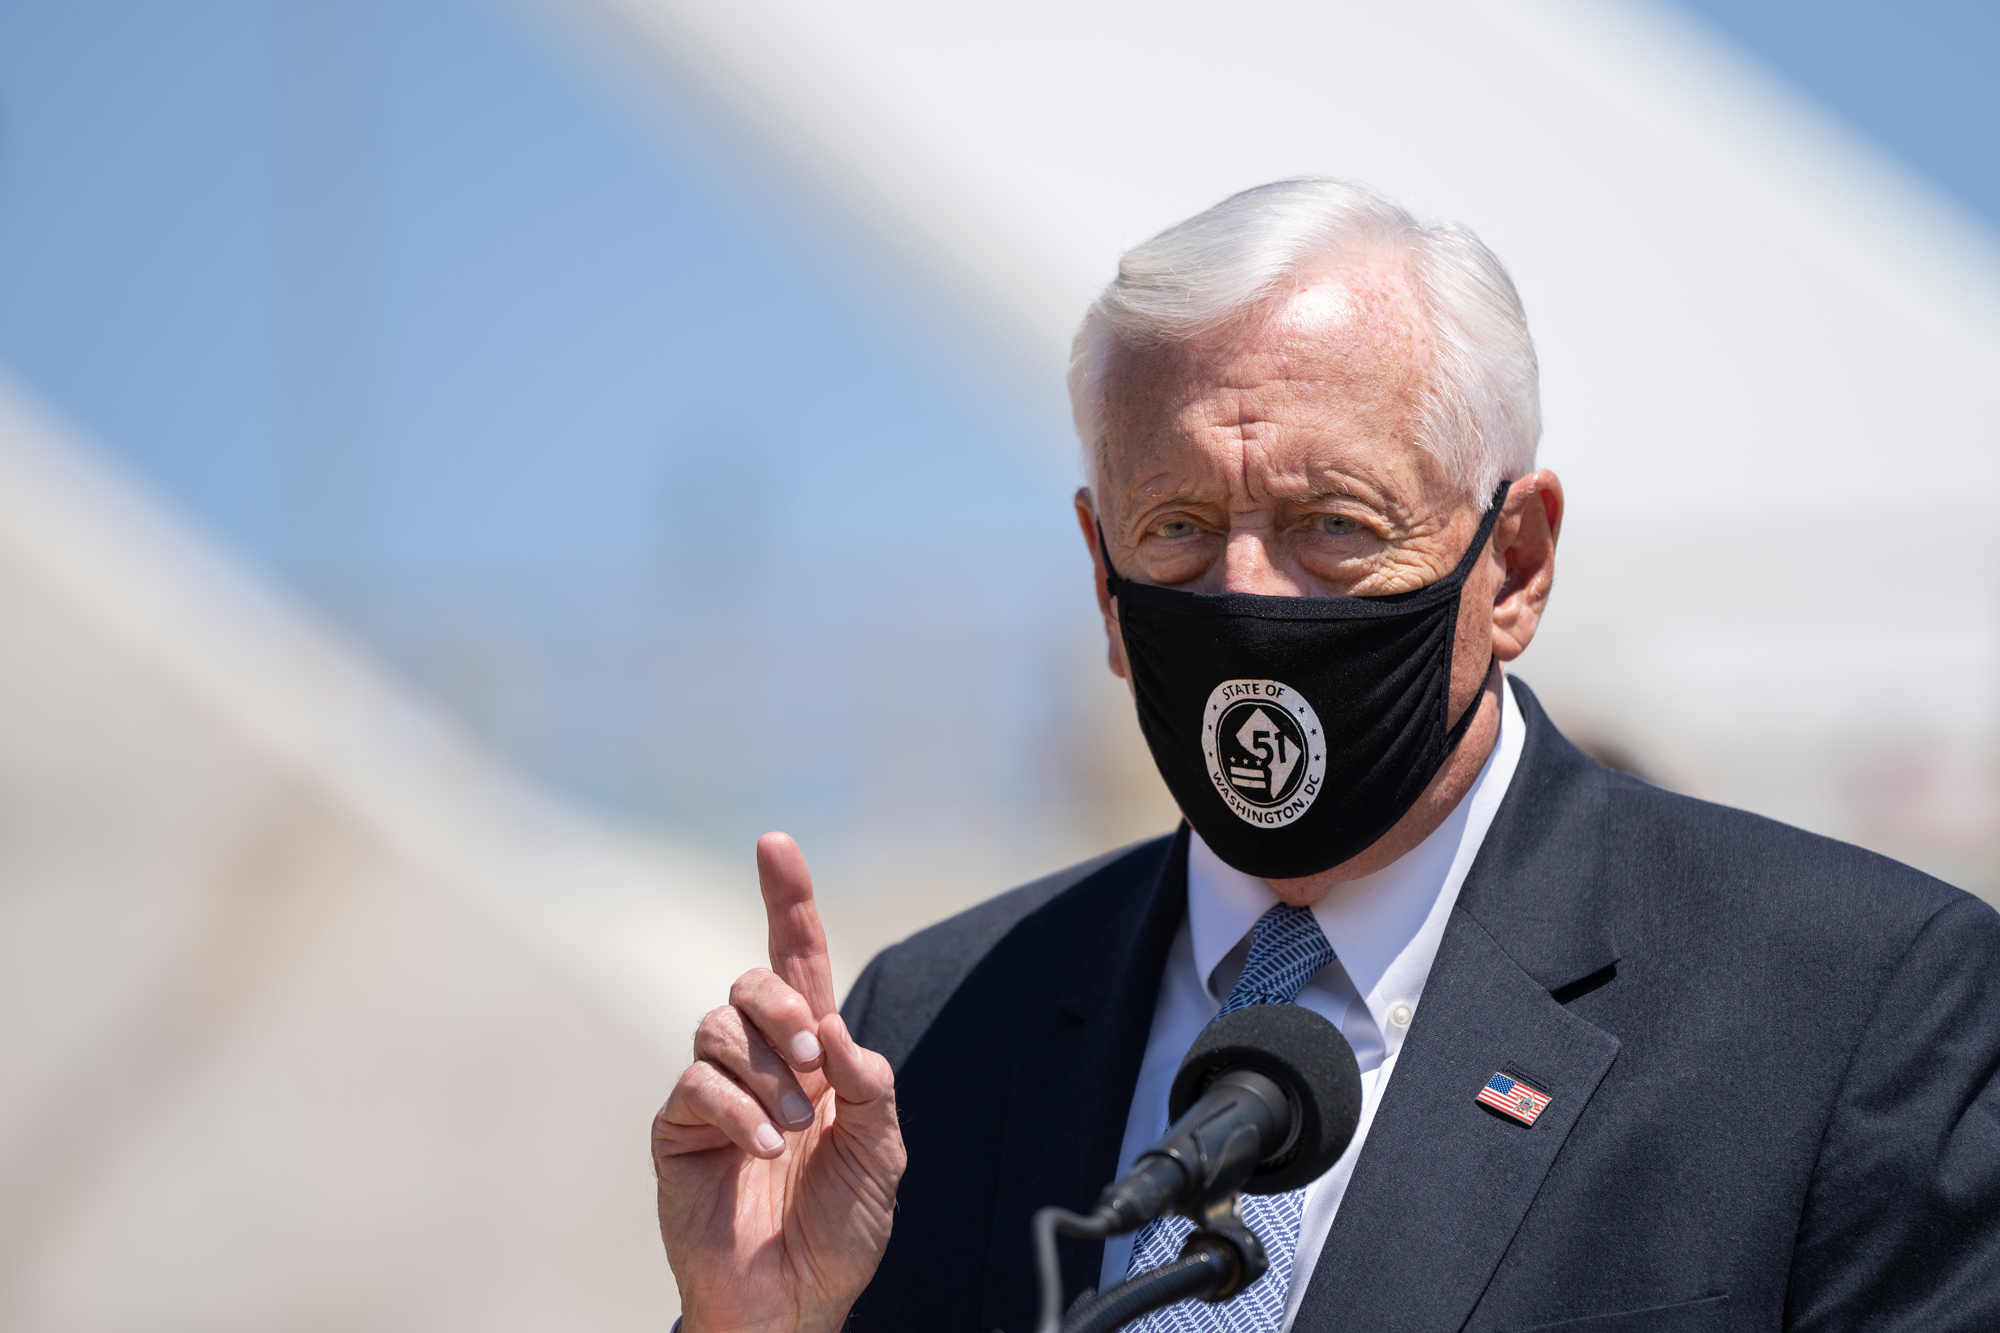 Rep. Steny Hoyer speaks during a news conference near the new Frederick Douglass Memorial Bridge on May 19 in Washington, DC.